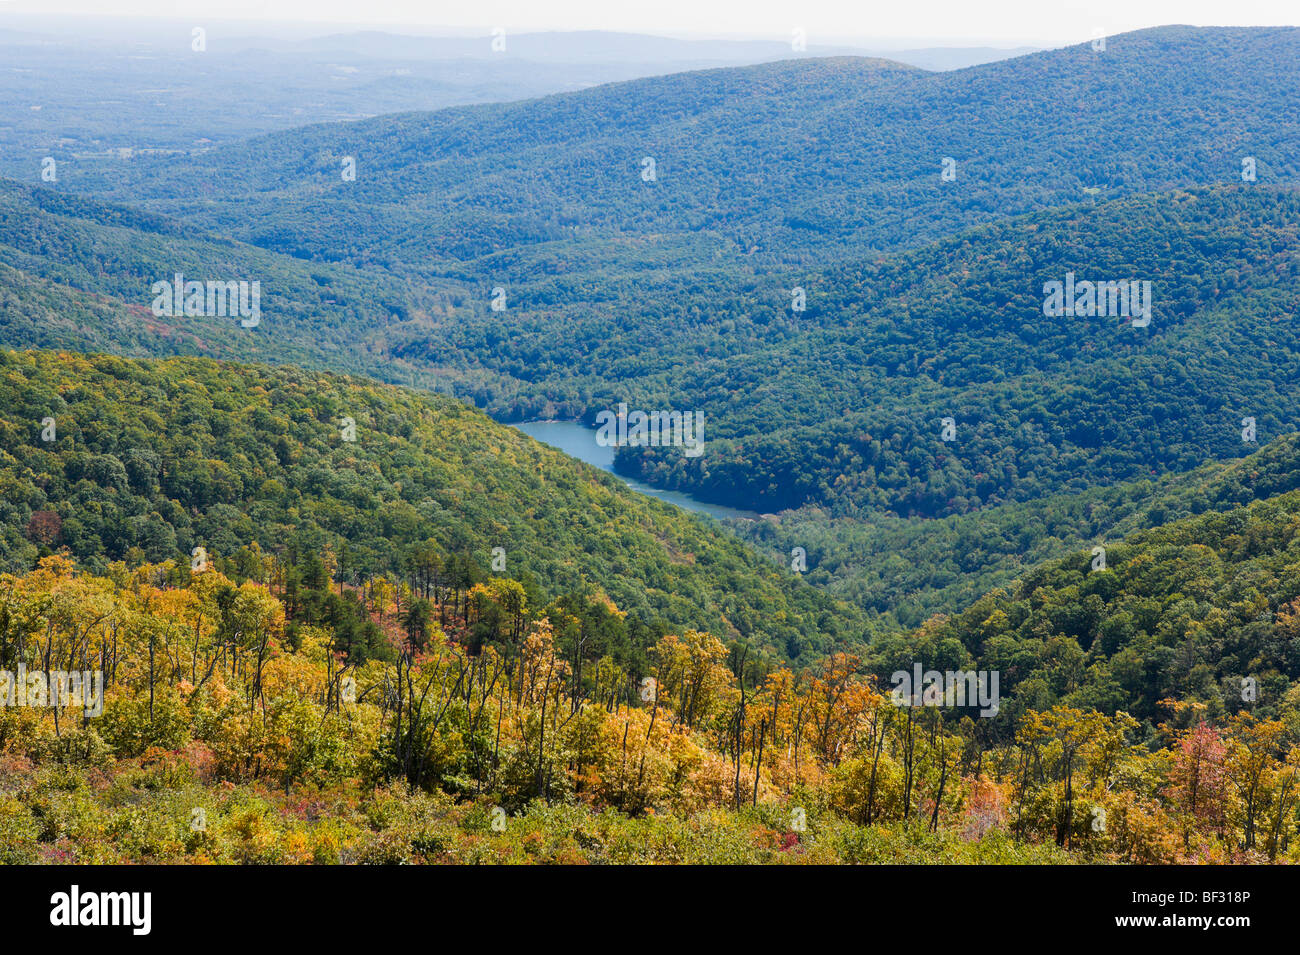 Moorman overlook